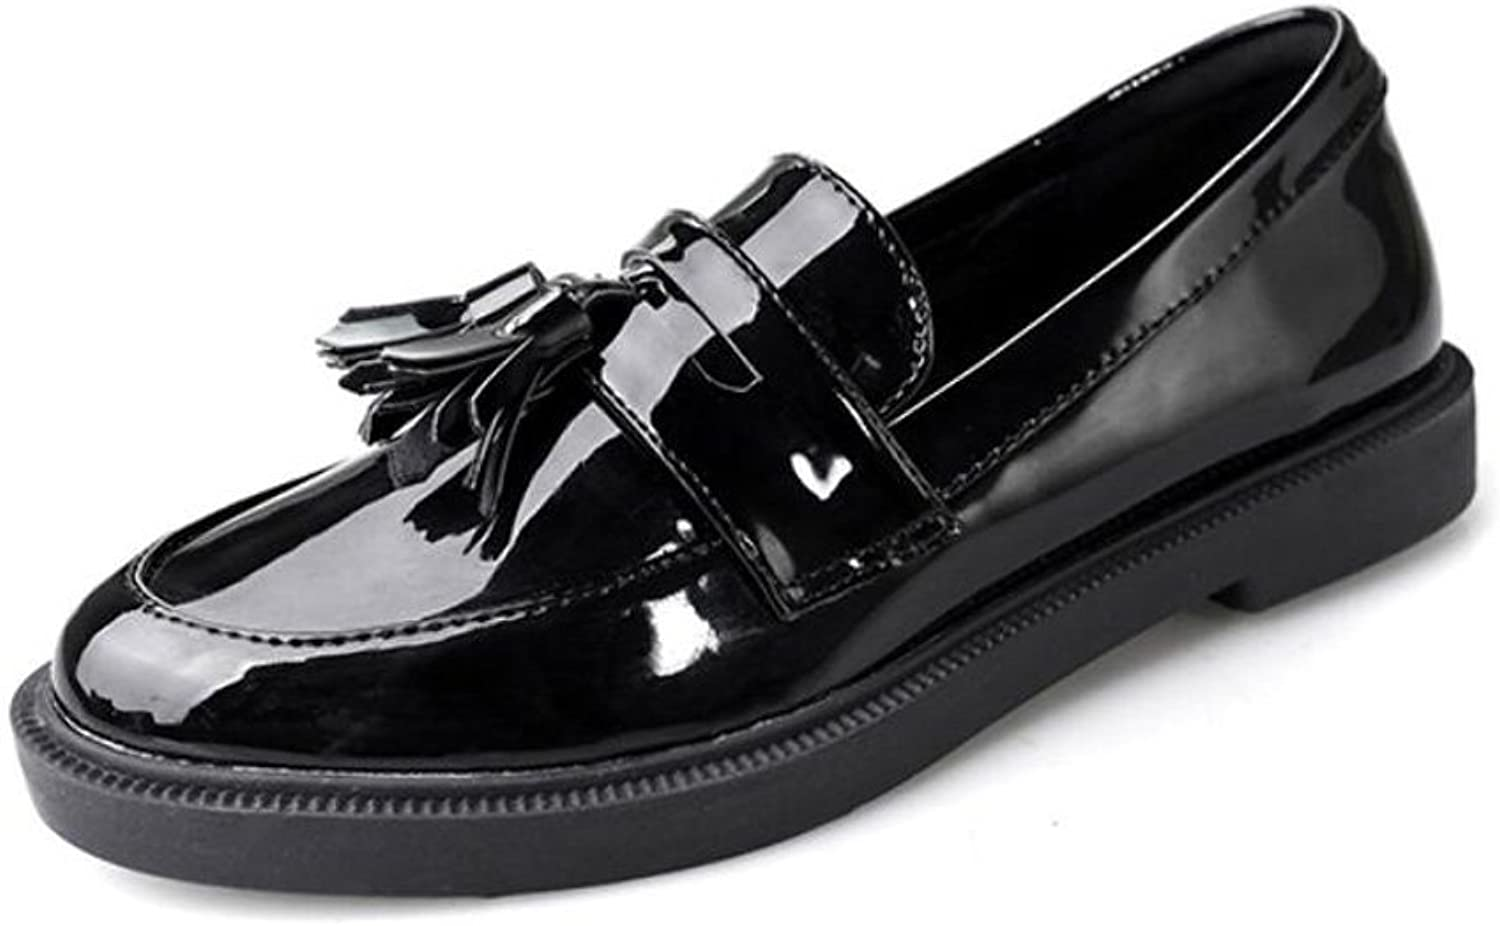 Ladies Oxford shoes Autumn Flats Heel Student Vintage Tassel Loafers shoes